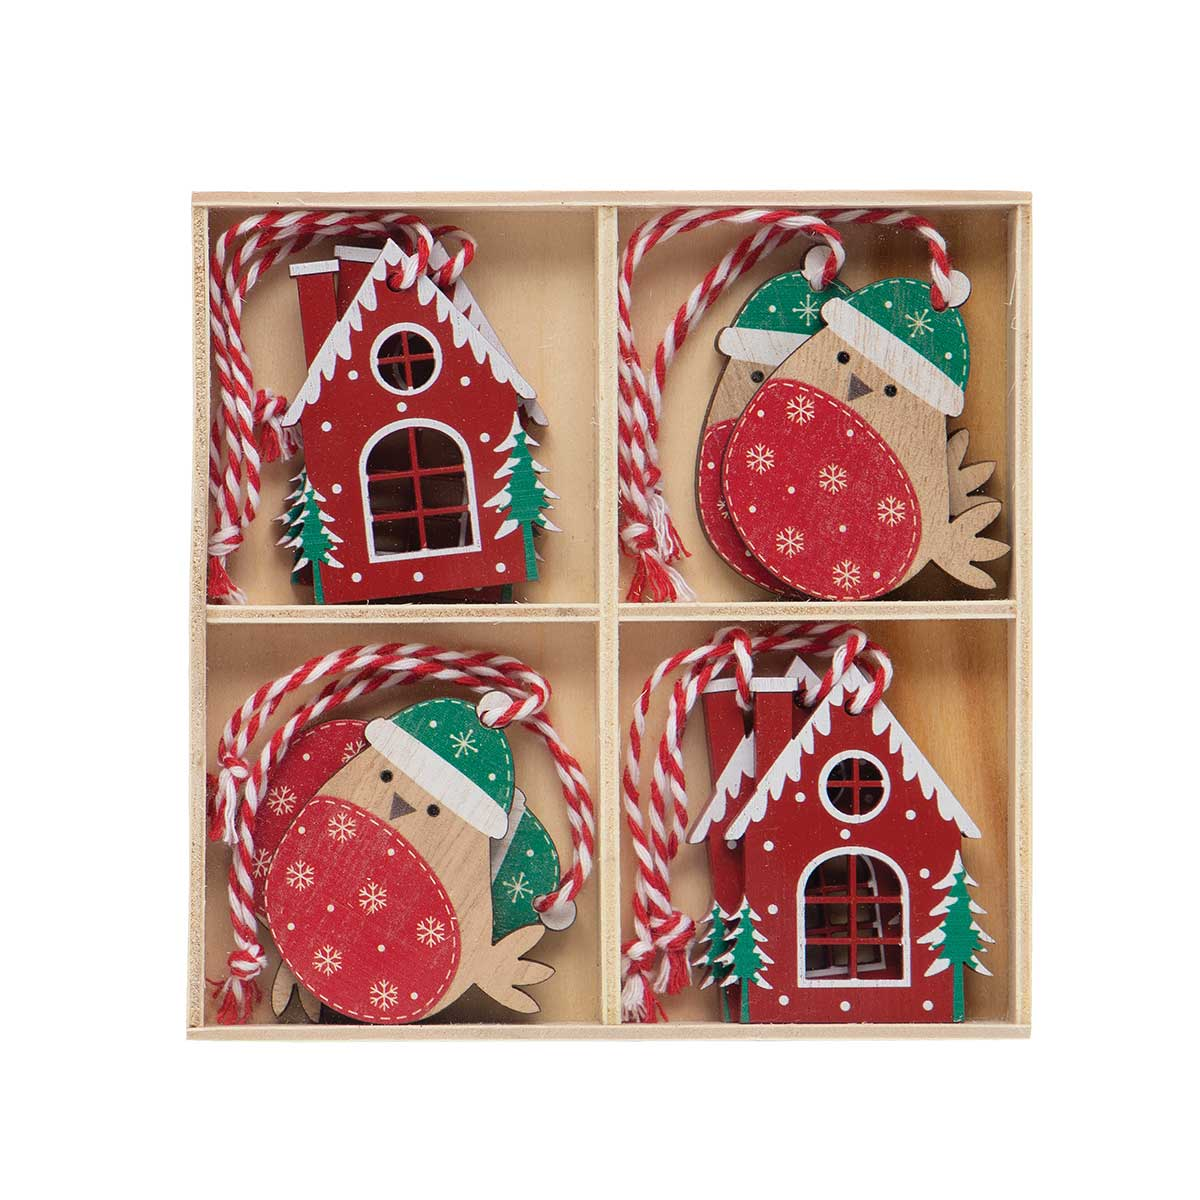 ALPINE HOUSE AND BIRD WOOD ORNAMENT RED/GREEN WITH